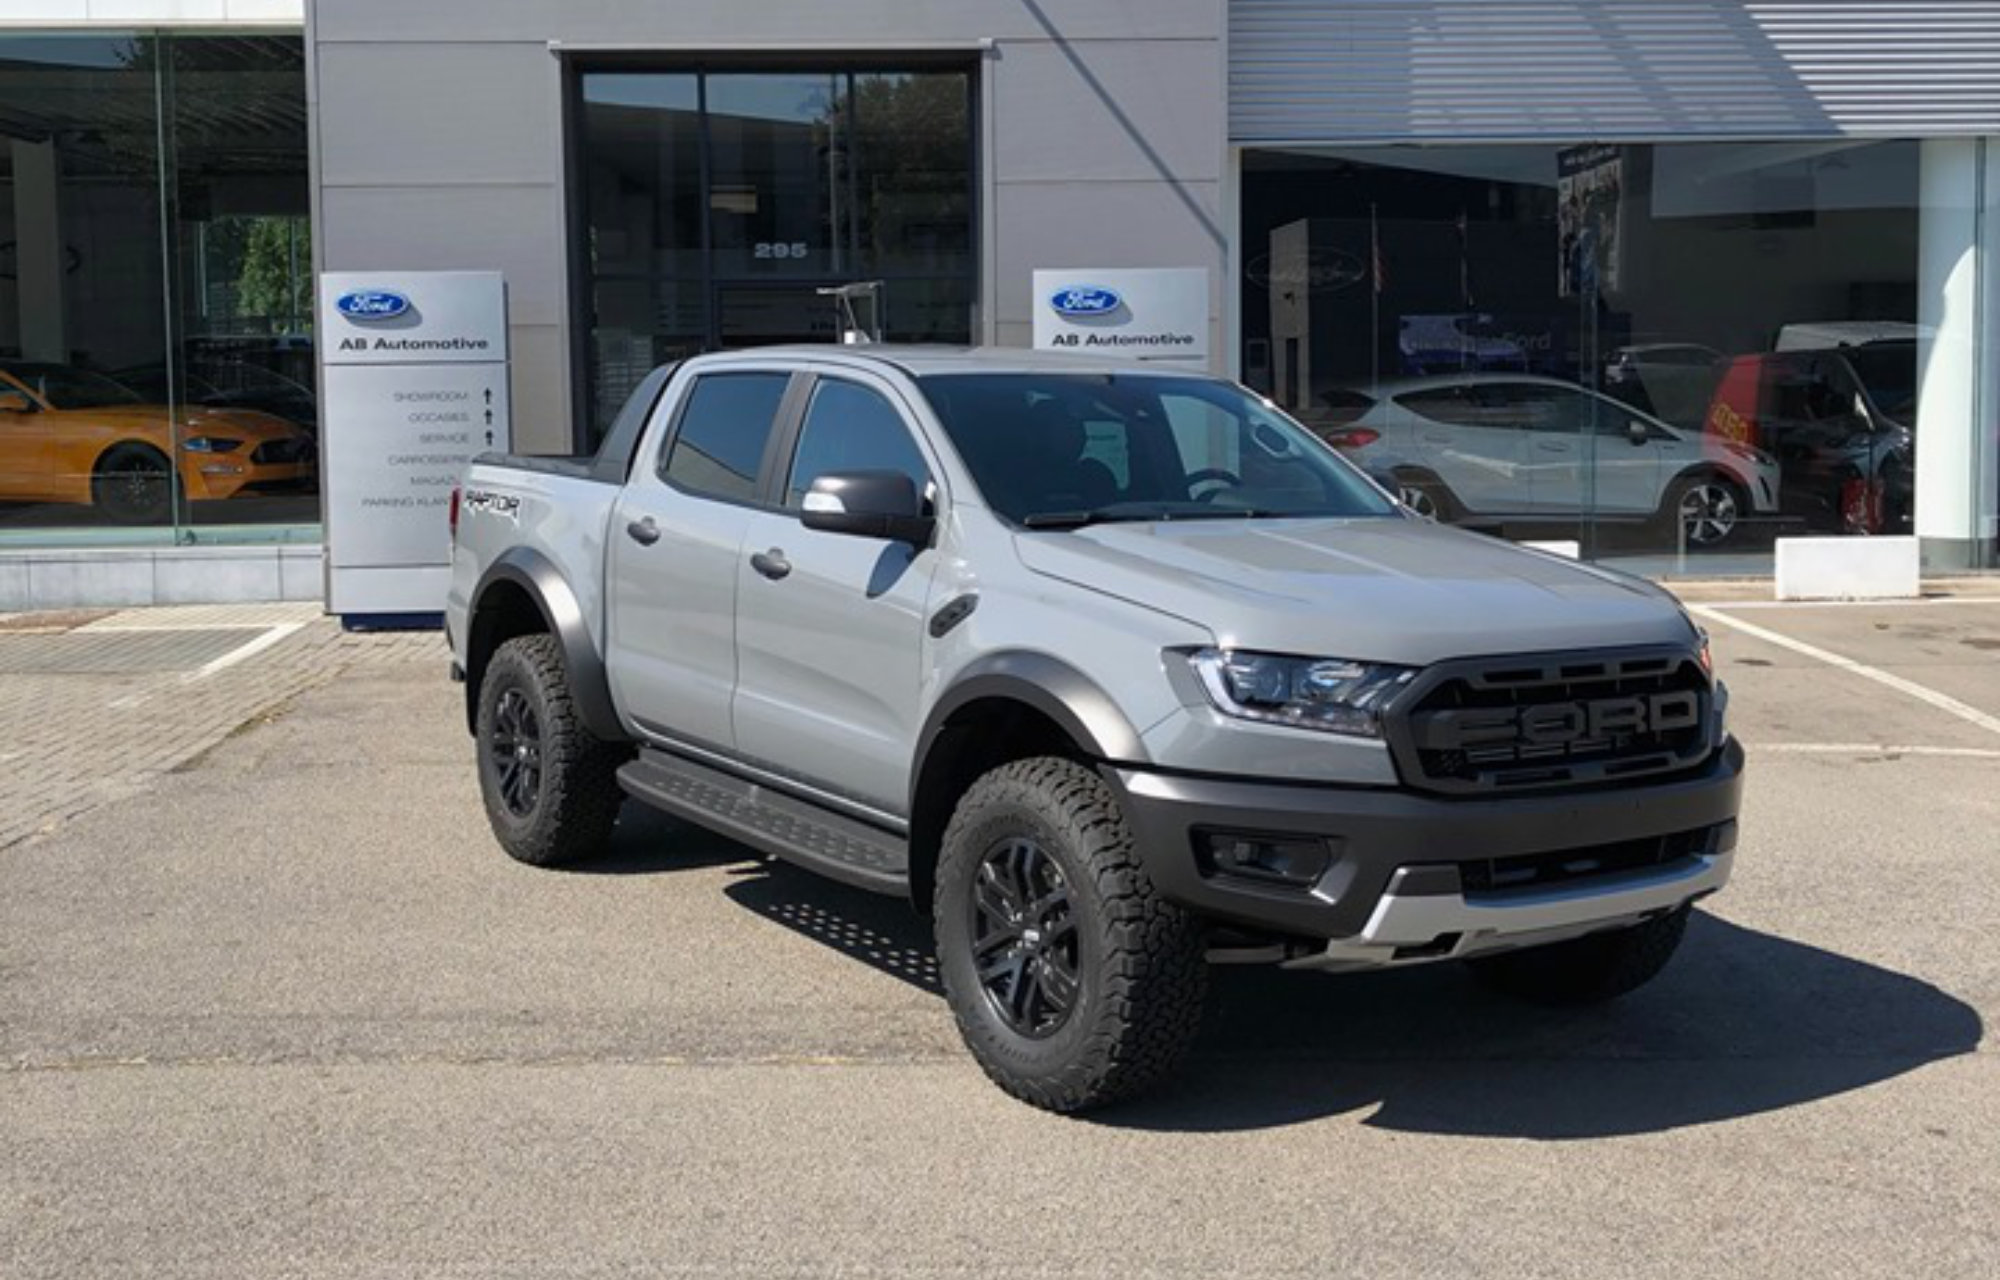 Ford Ranger Raptor AB Automotive